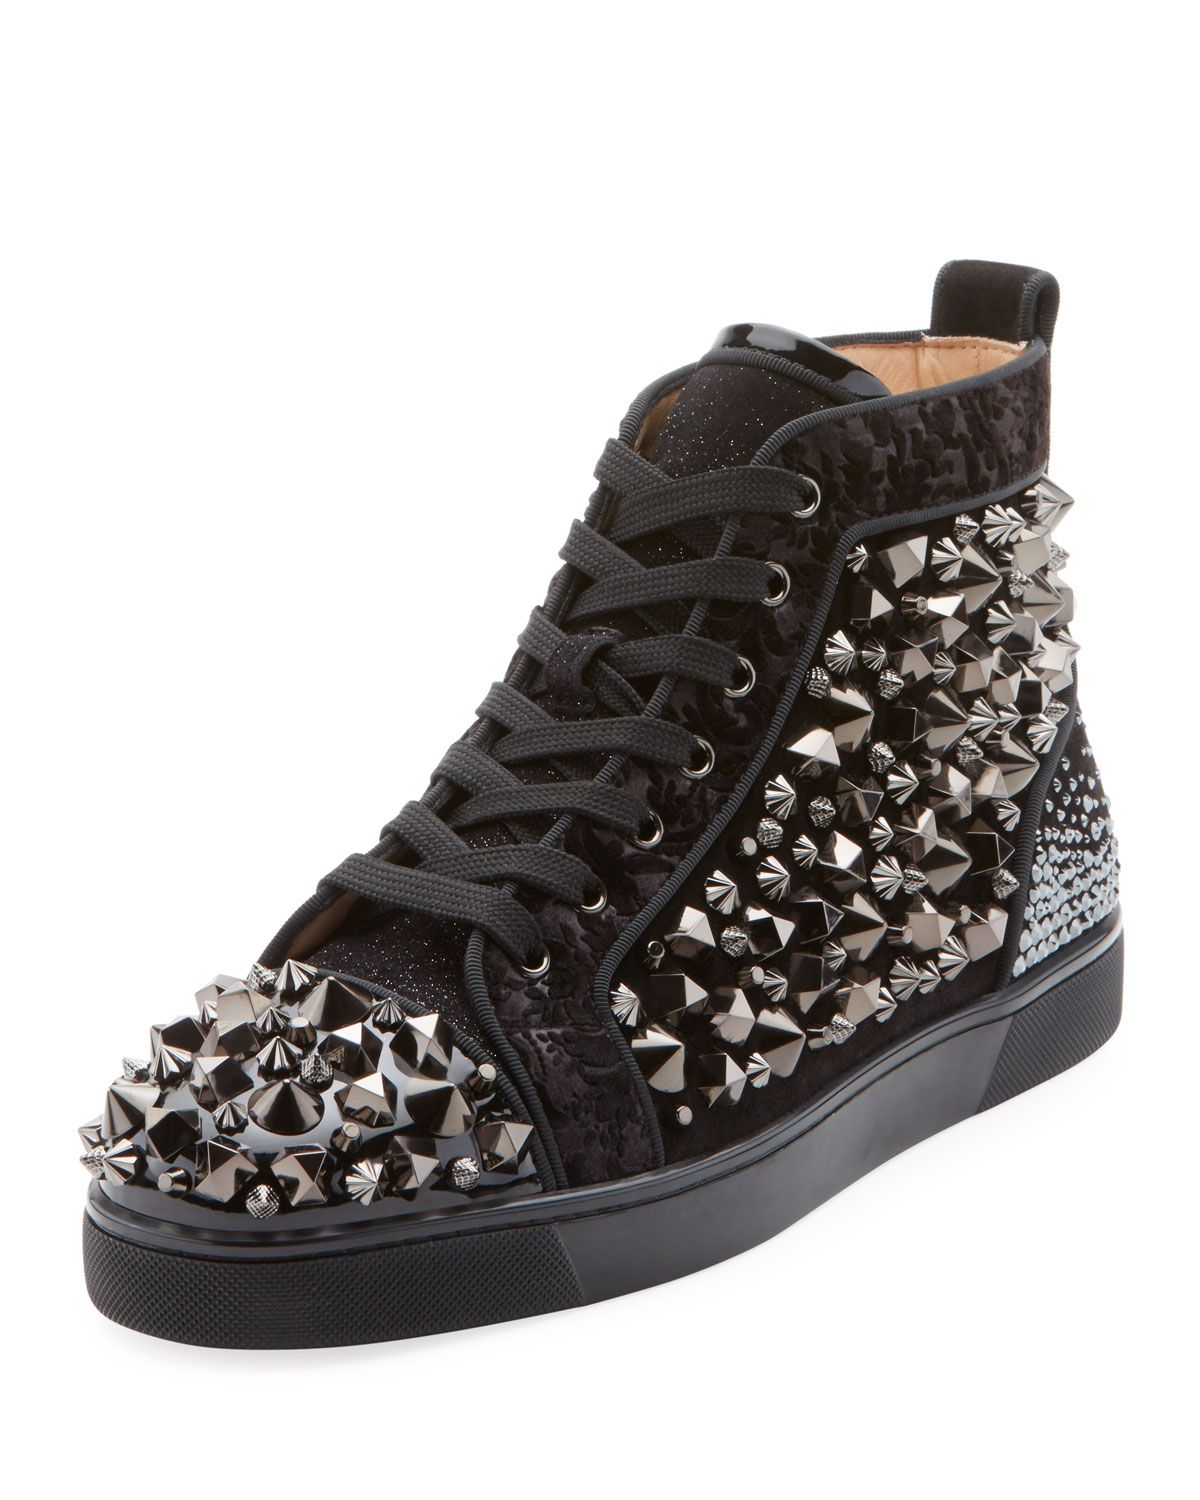 95fb9df2feb CHRISTIAN LOUBOUTIN MEN'S LOUIS MIX MID-TOP SPIKED LEATHER SNEAKERS ...